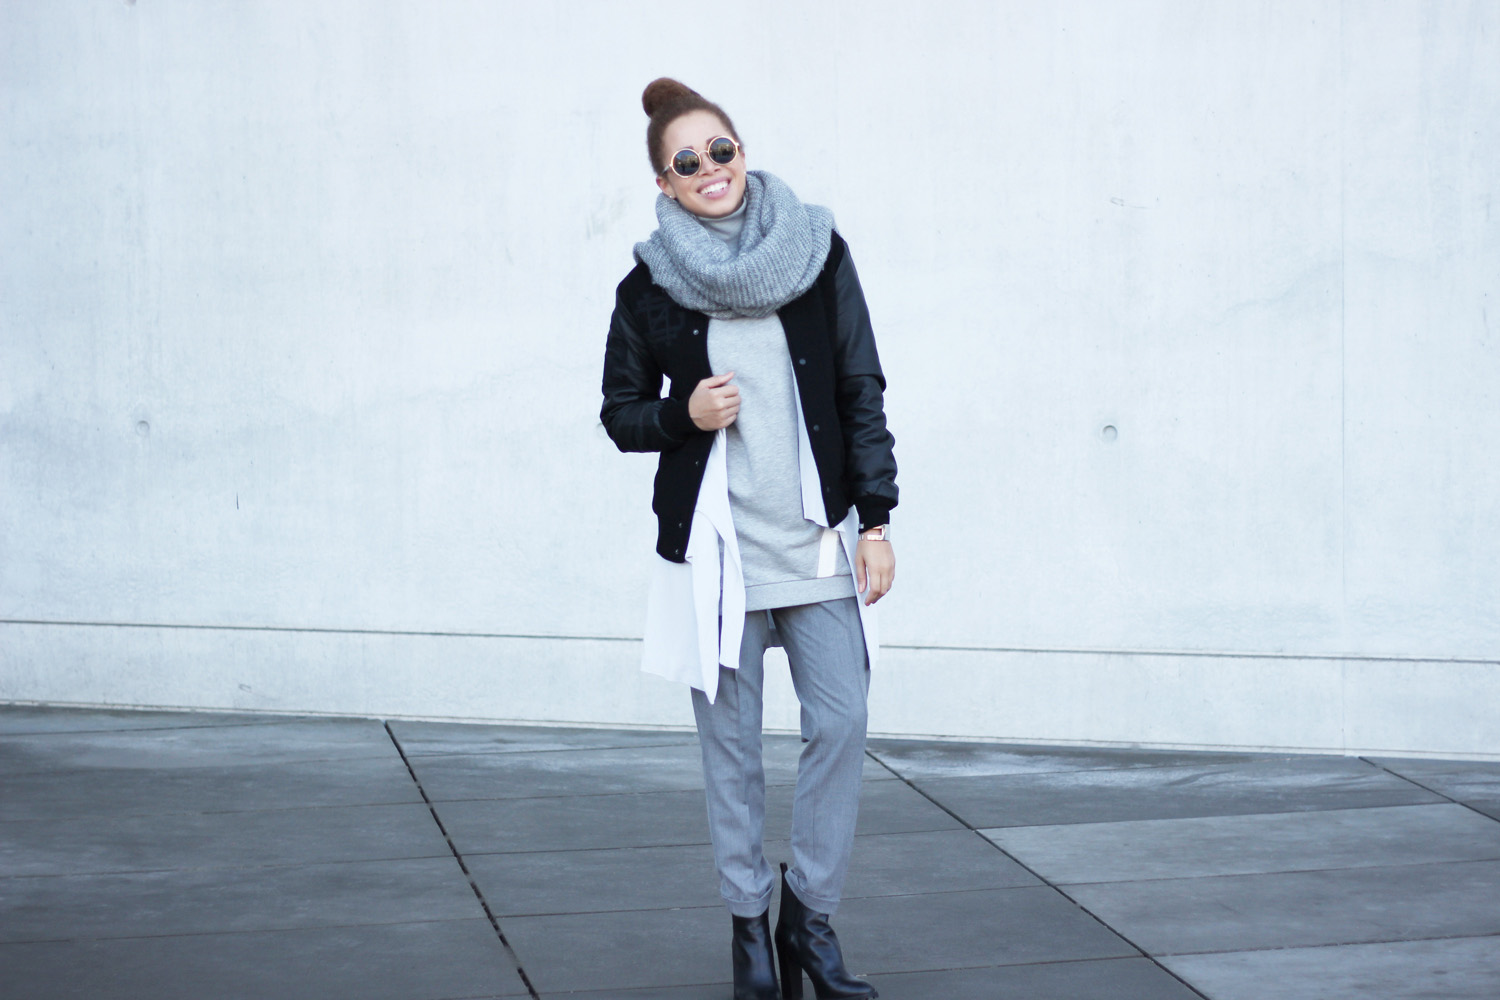 fatimayarie-grey-bomberjacket-vest-collegesweater-retro-round-glasses-img_6282